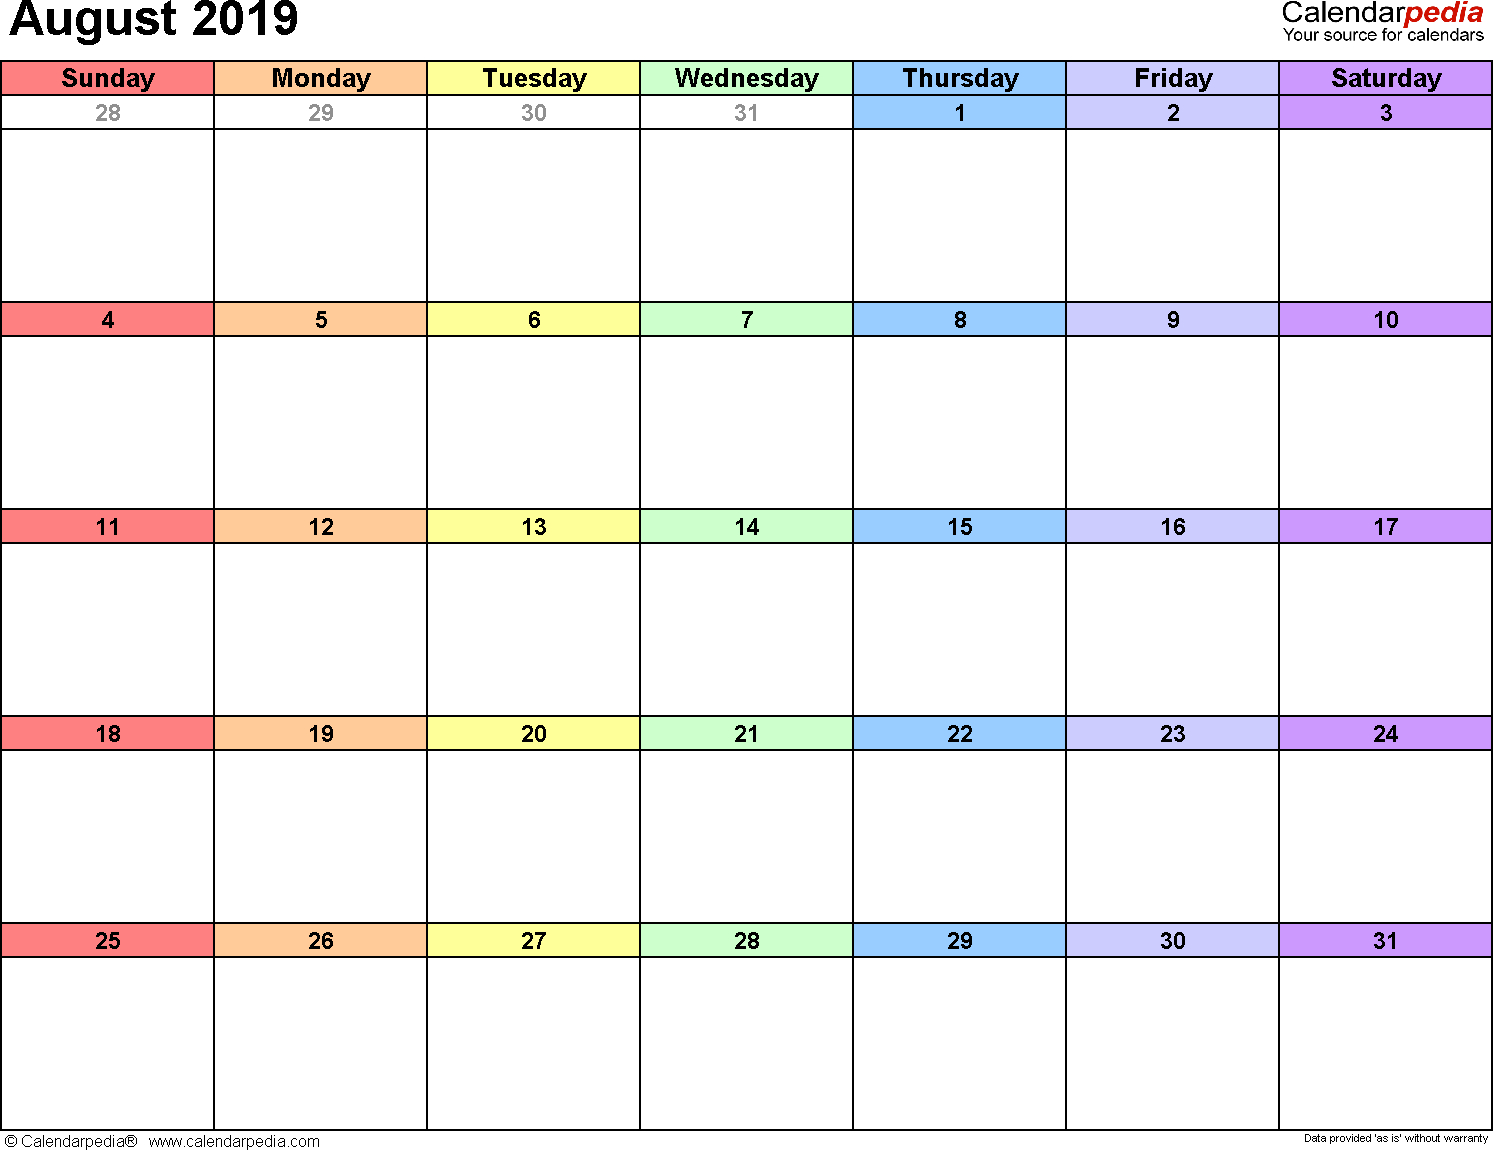 August 2019 Calendars For Word, Excel & Pdf with regard to August Calendar Template To Type In